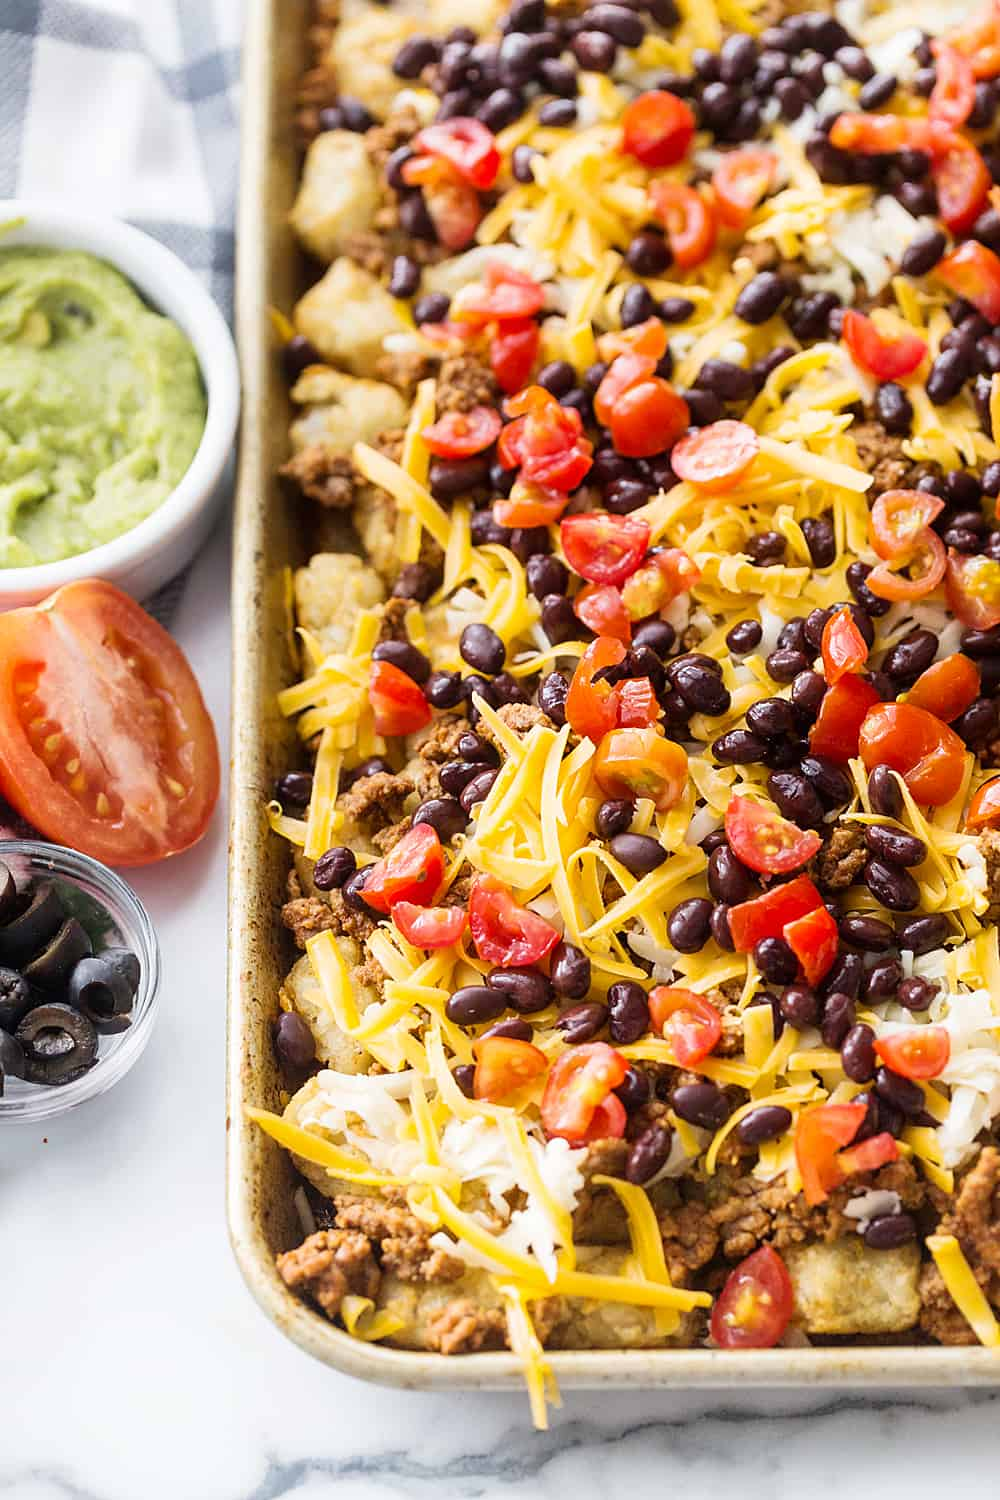 Tater Tot Nachos (Totchos) - What's better than crispy, crunch tater tots topped with oh-so-flavorful nacho fixings? Nothing! That's why tater tot nachos, aka totchos, are always a hit! #nachos #tatertots #tatertotcasserole #appetizer #baking #cooking #easyrecipe #halfscratched #tatertotnachos #mexicanfood